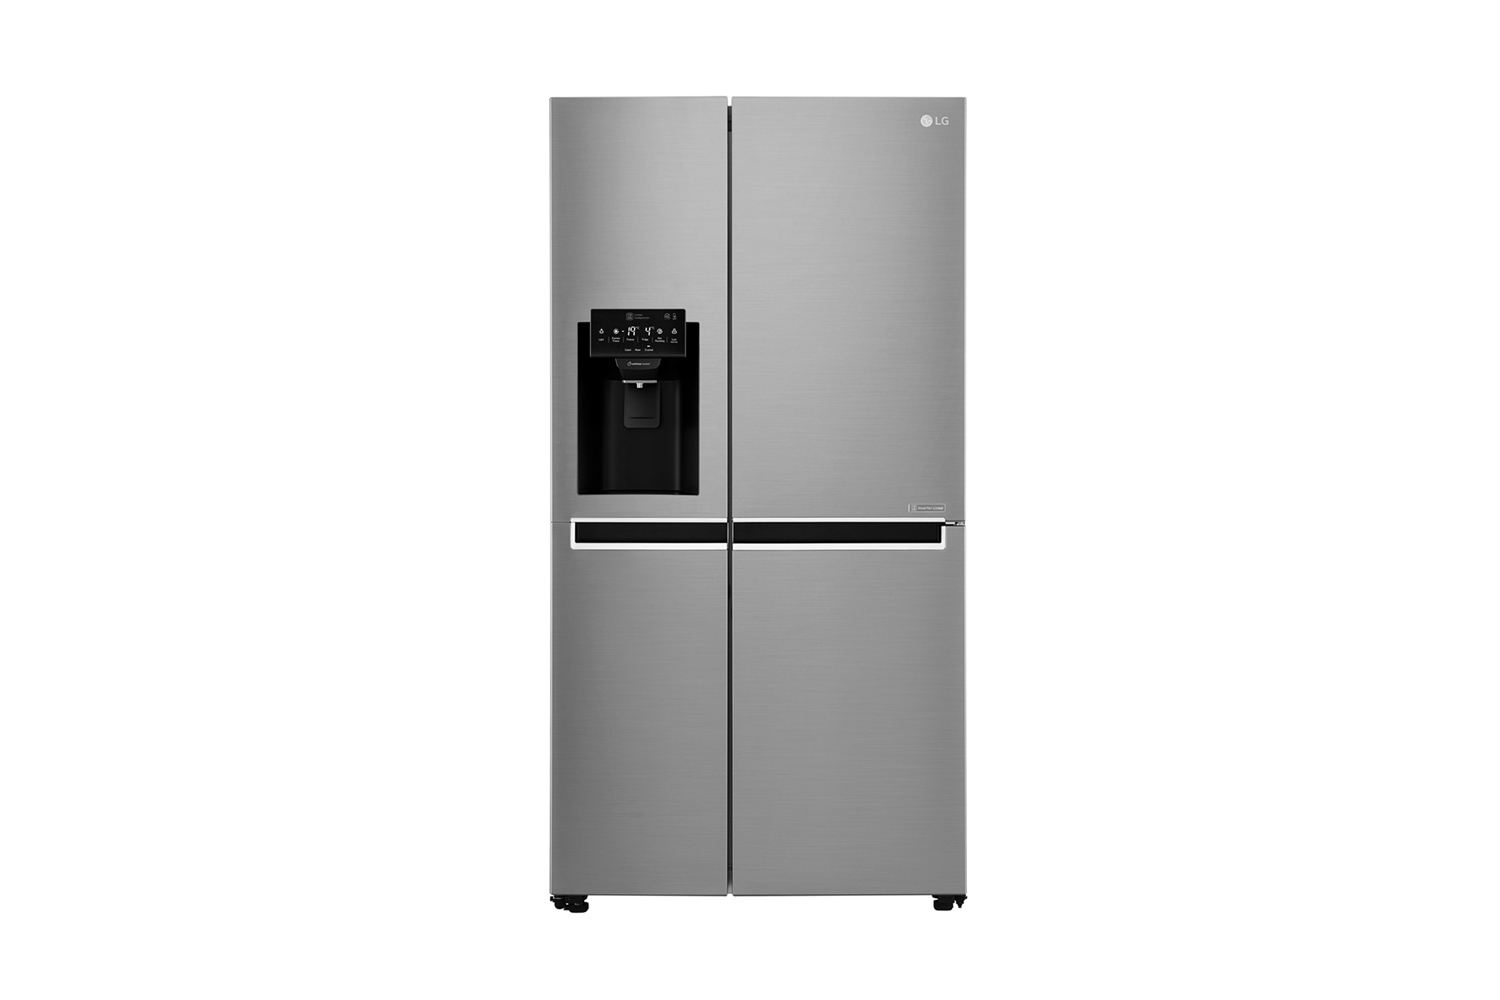 Fridge Freezer Lg 668l Side By Side Fridge Freezer